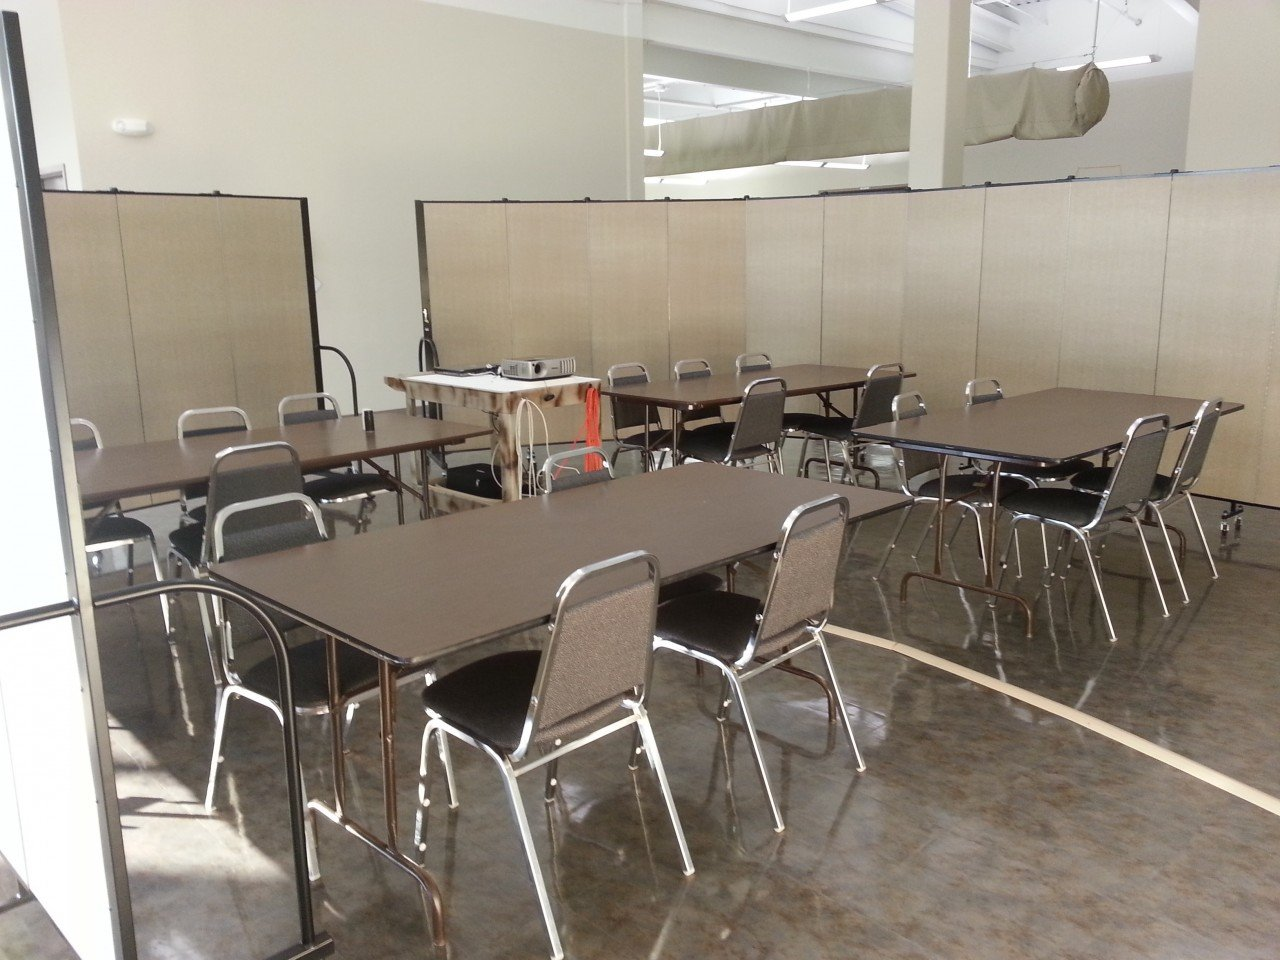 4 rectangular tables and chairs surround a projector in a temporary meeting room created with Screenflex Room Divider walls.